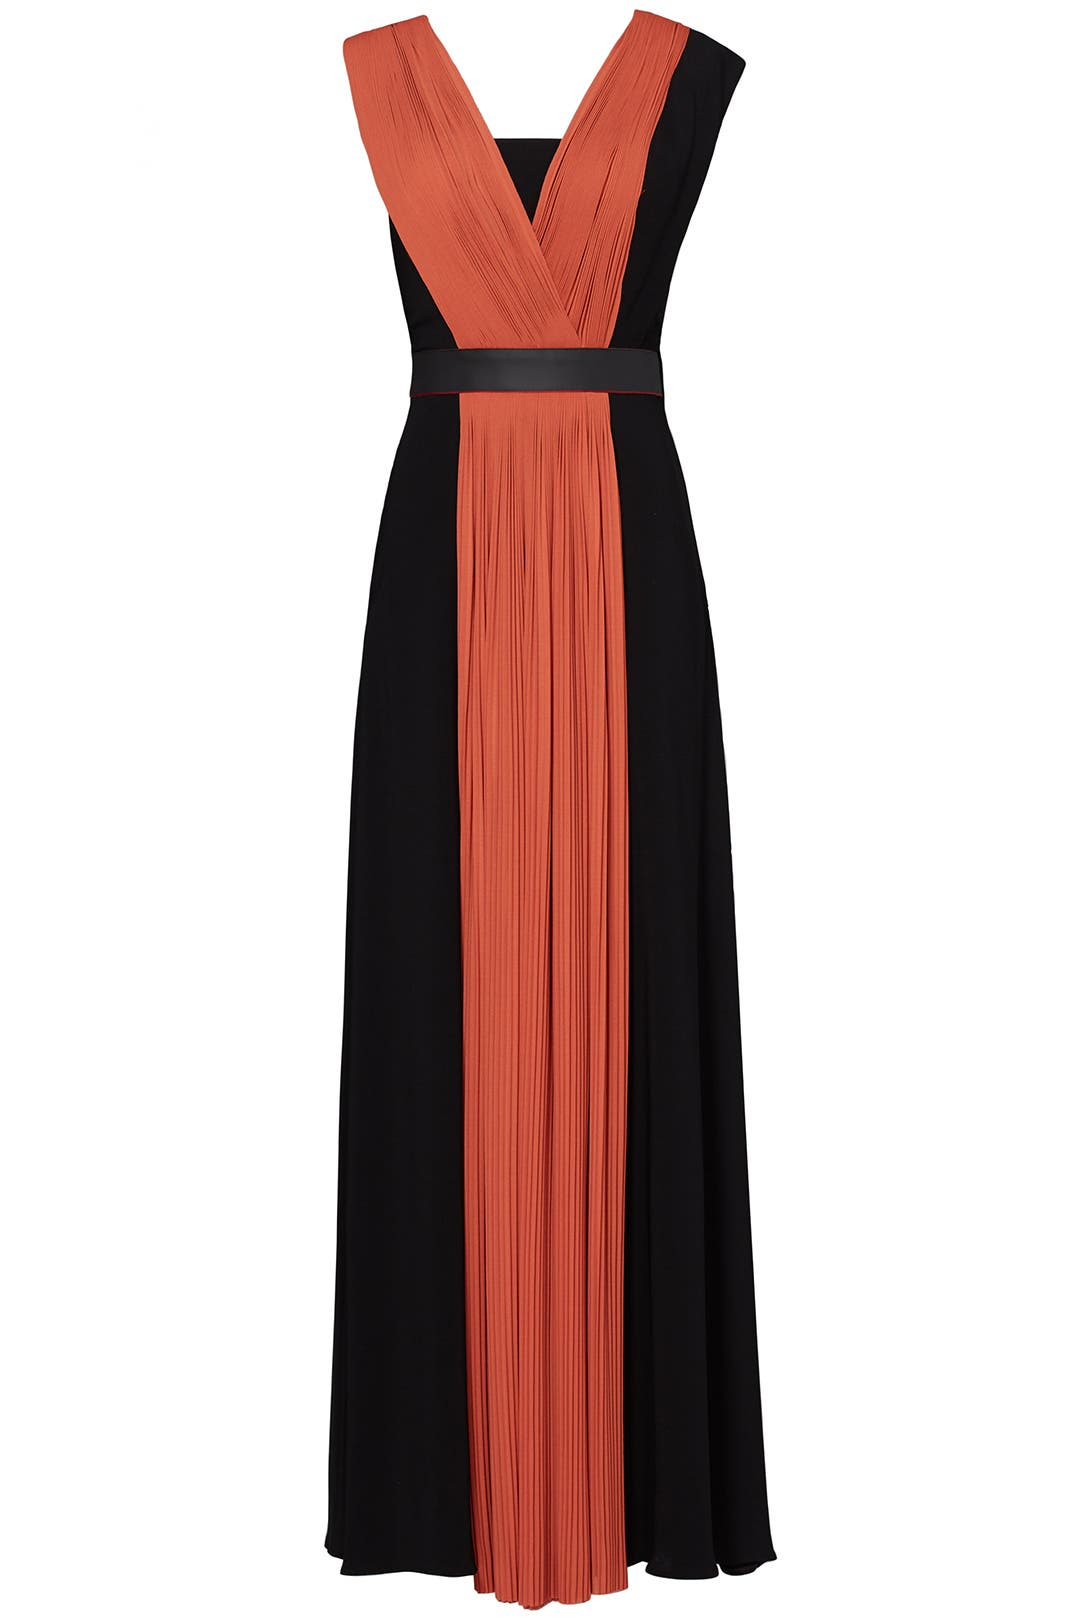 Orange Pleated Gown by Vionnet for $325 | Rent the Runway